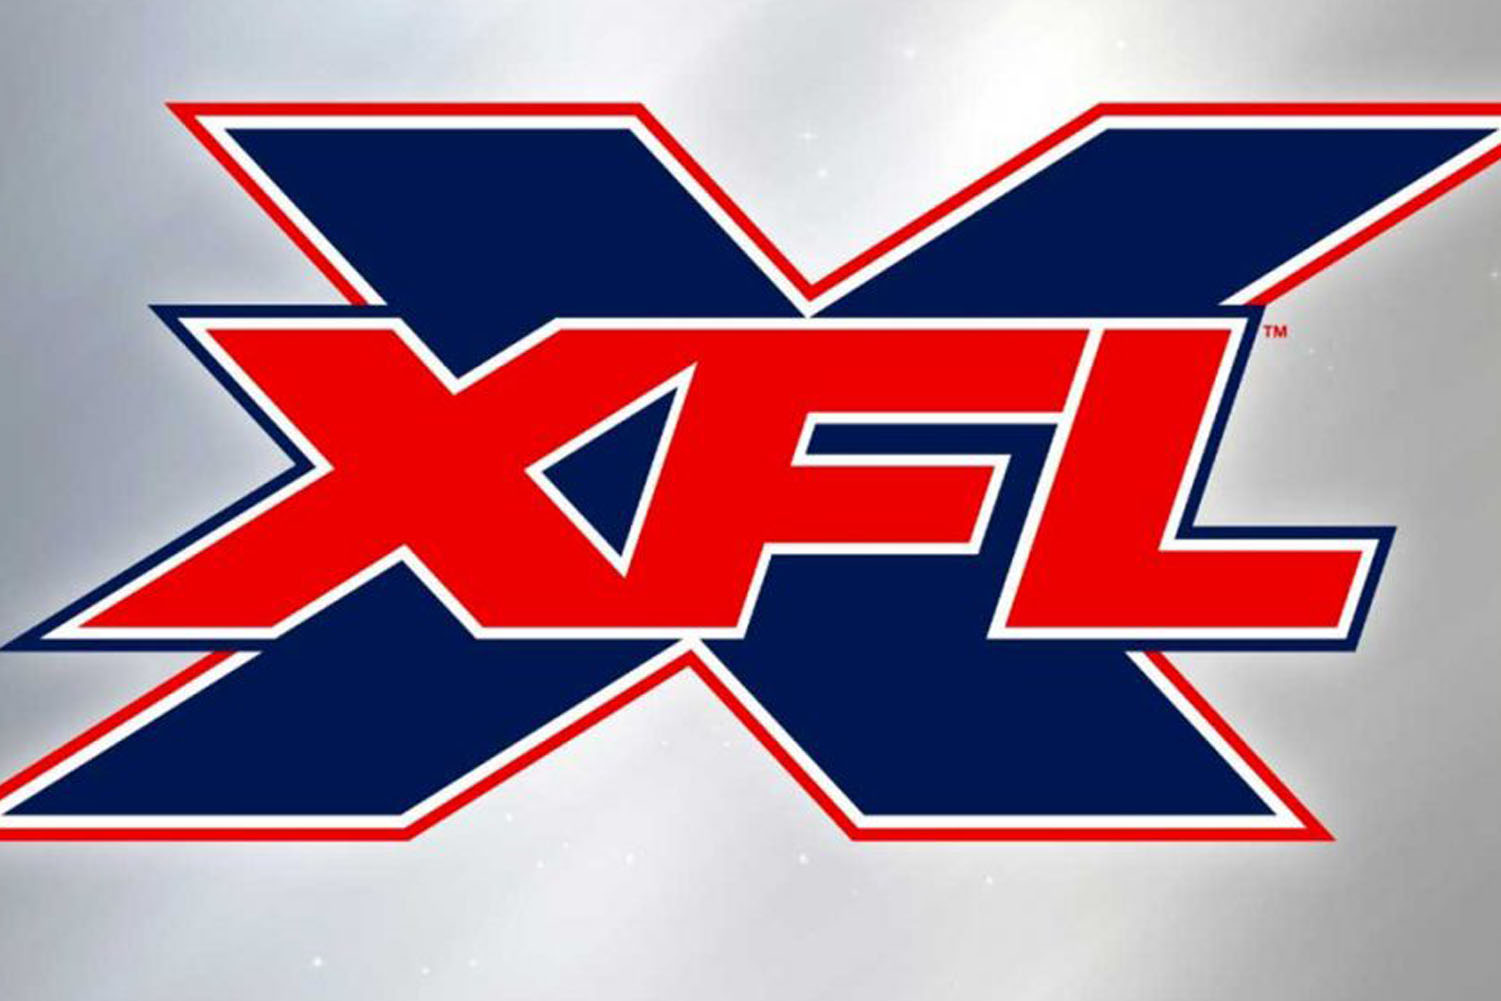 St. Louis is on track to get an Extreme Football League (XFL) team for the 2020 comeback season.